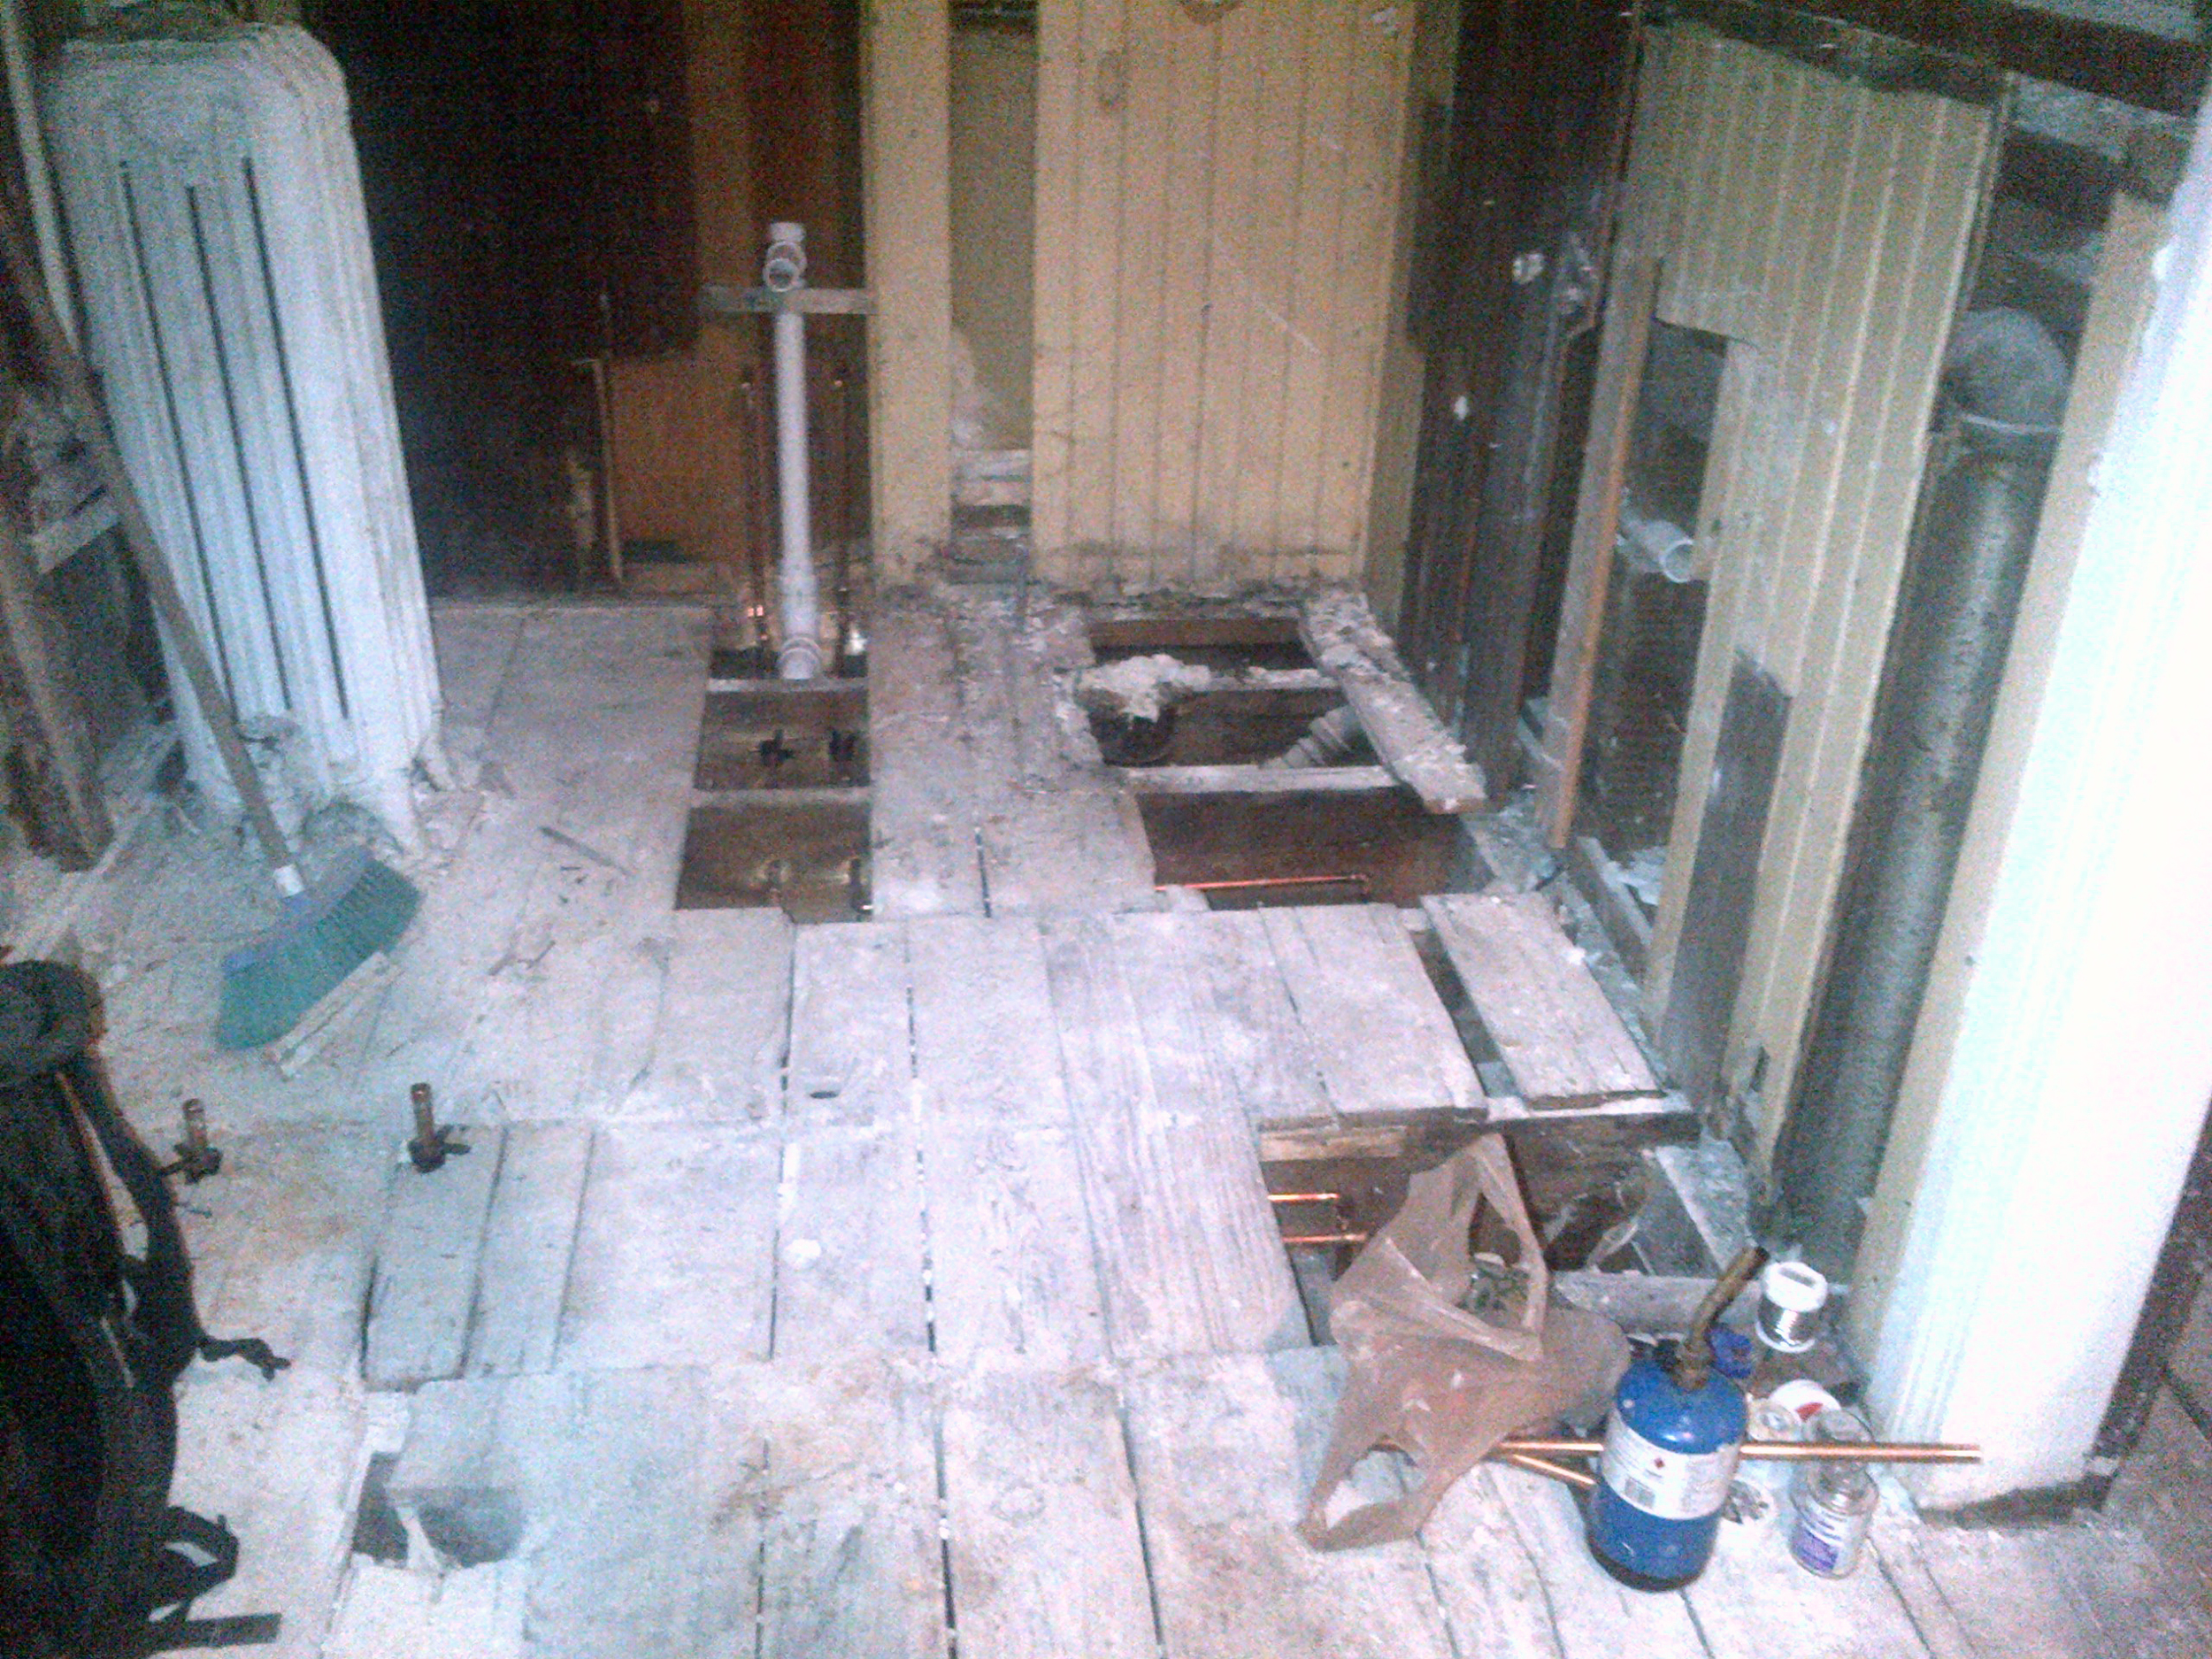 Significant water damage had been done to the bathroom floor.